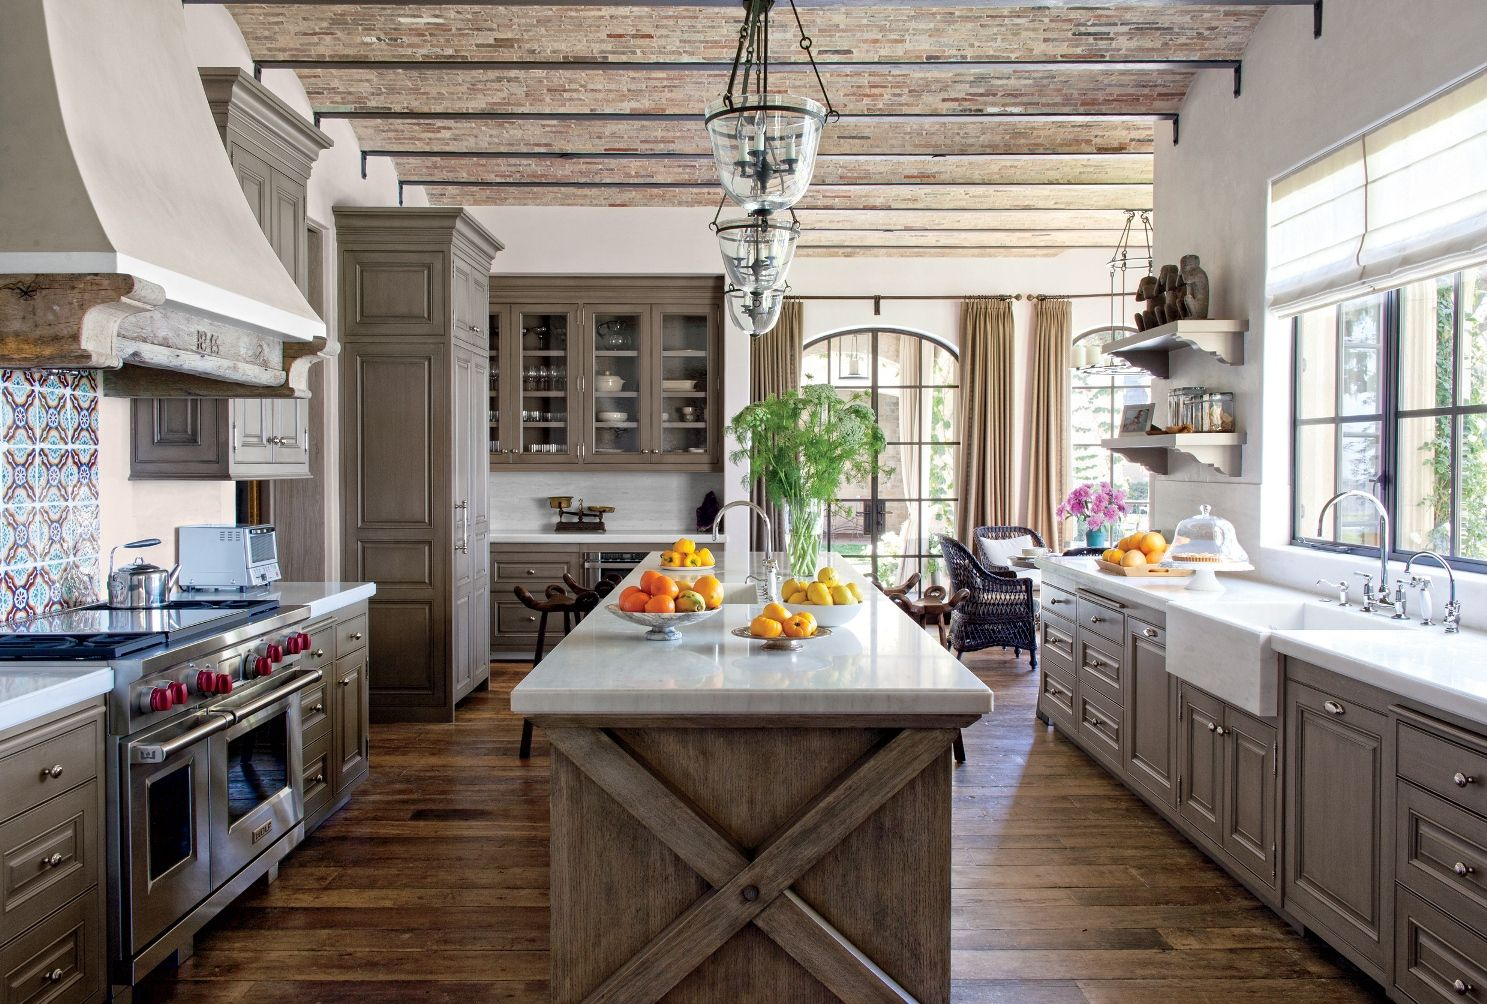 Cuisine Chalet Rustique Meilleur De Galerie Interesting Rustic Kitchen Design Featuring Brown Laminated Wooden